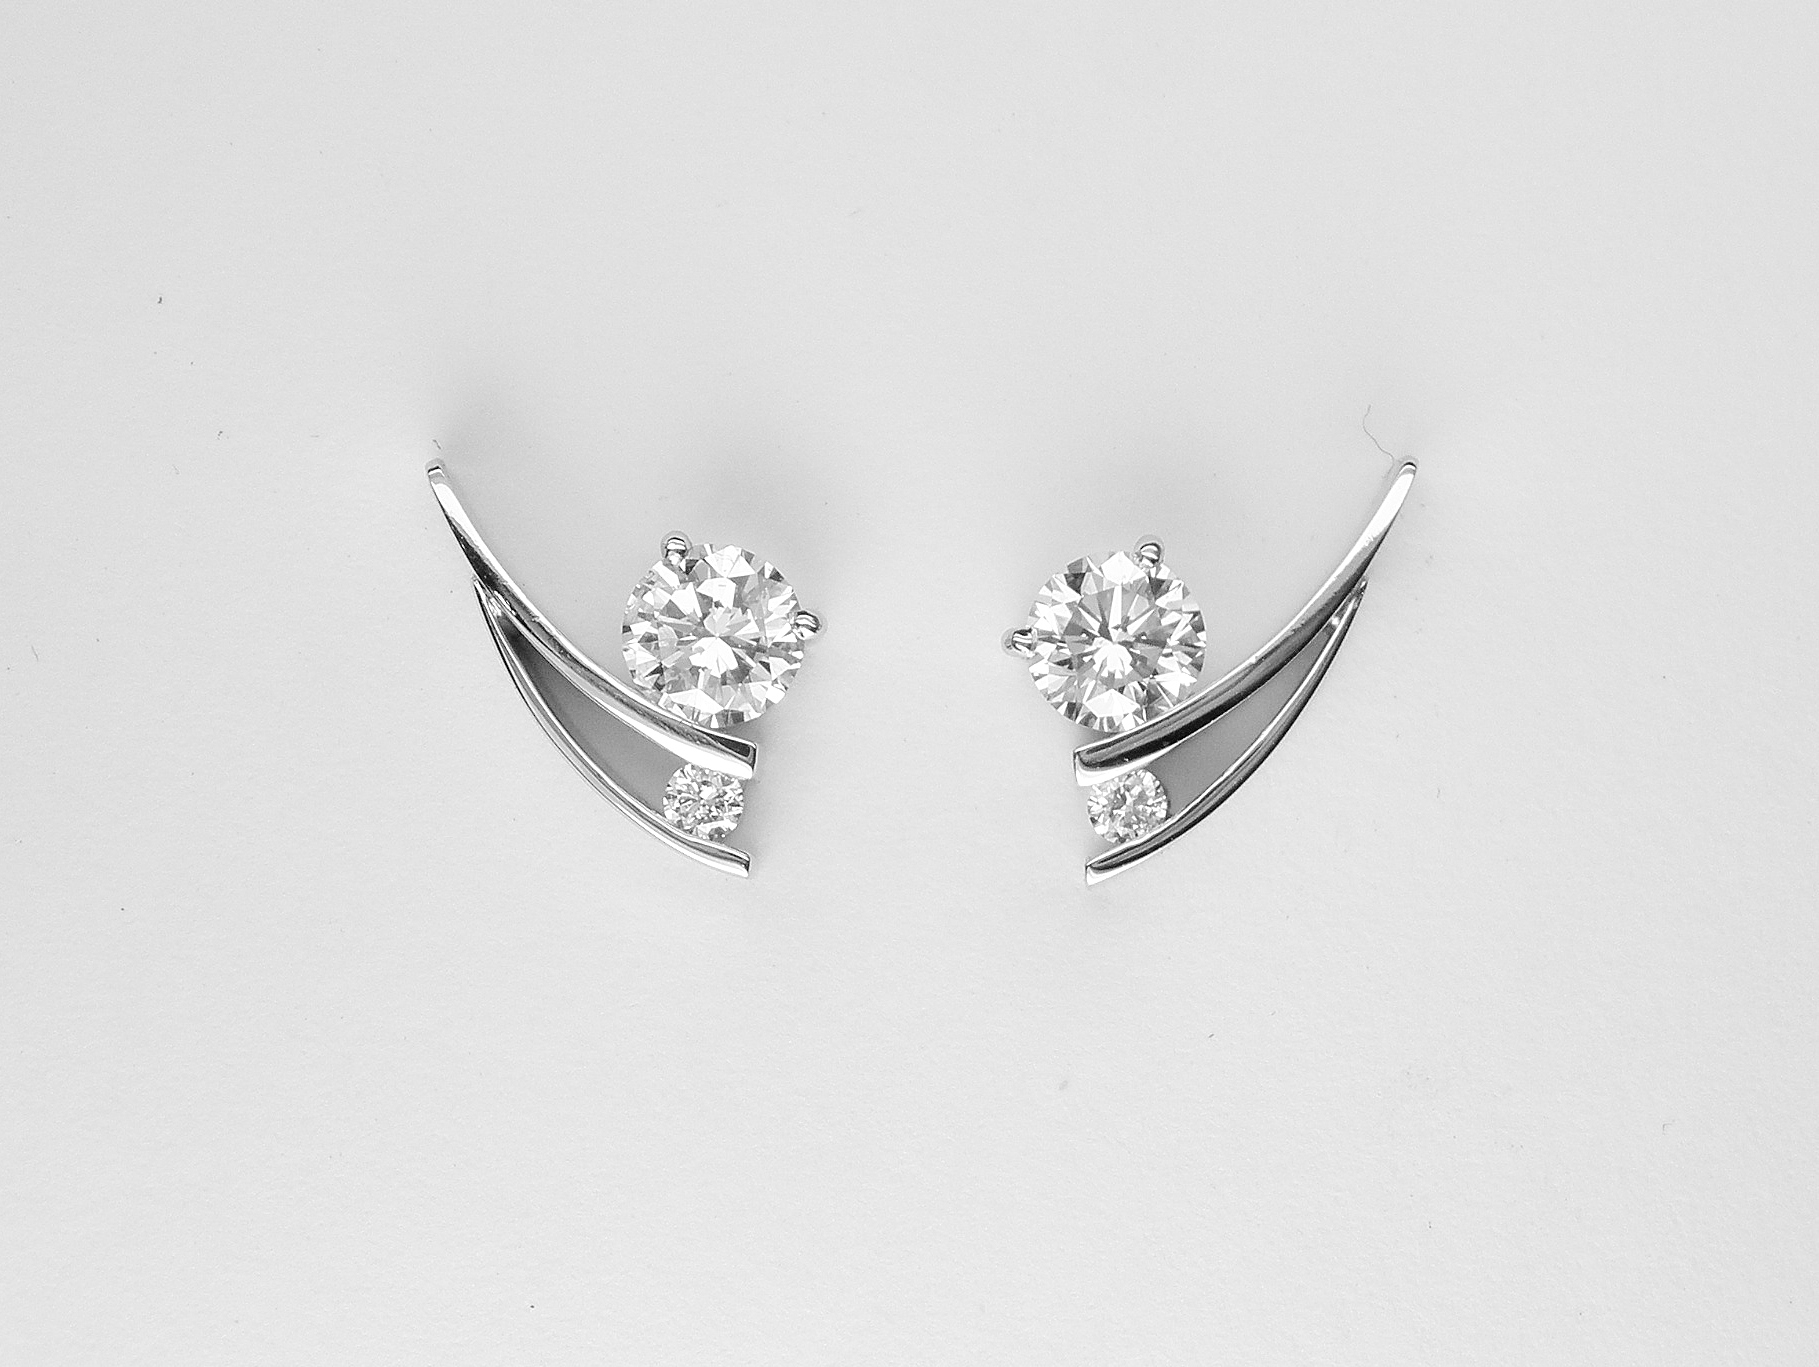 Tick style Platinum & palladium set 2 stone round brilliant cut diamond stud earrings.